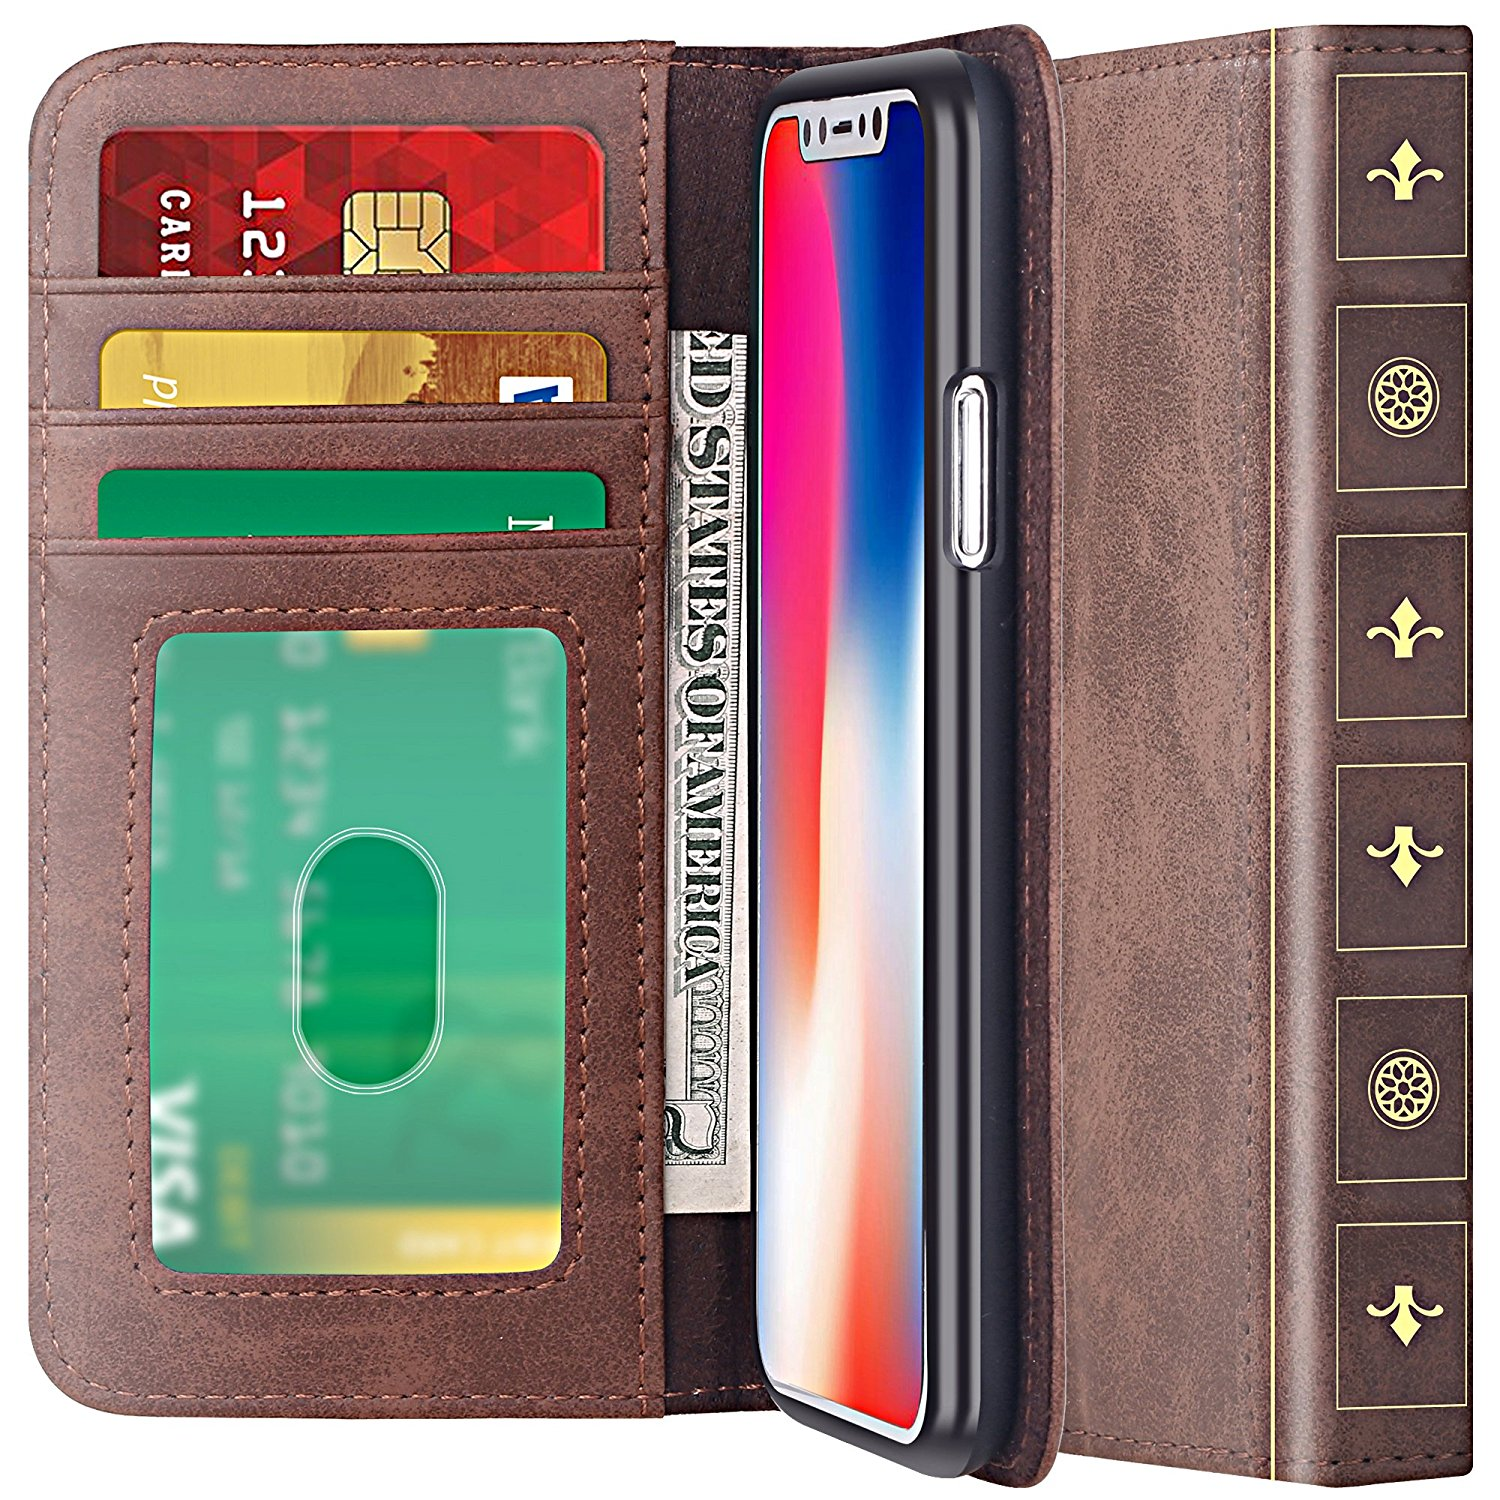 iPhone X Case [Cards Slot Pocket], ELV iPhone X Flip Case [PU Leather] Slim Folio [Book Style] Wallet Purse Protective [Pull tab] Case Cover for Apple iPhone X - BROWN